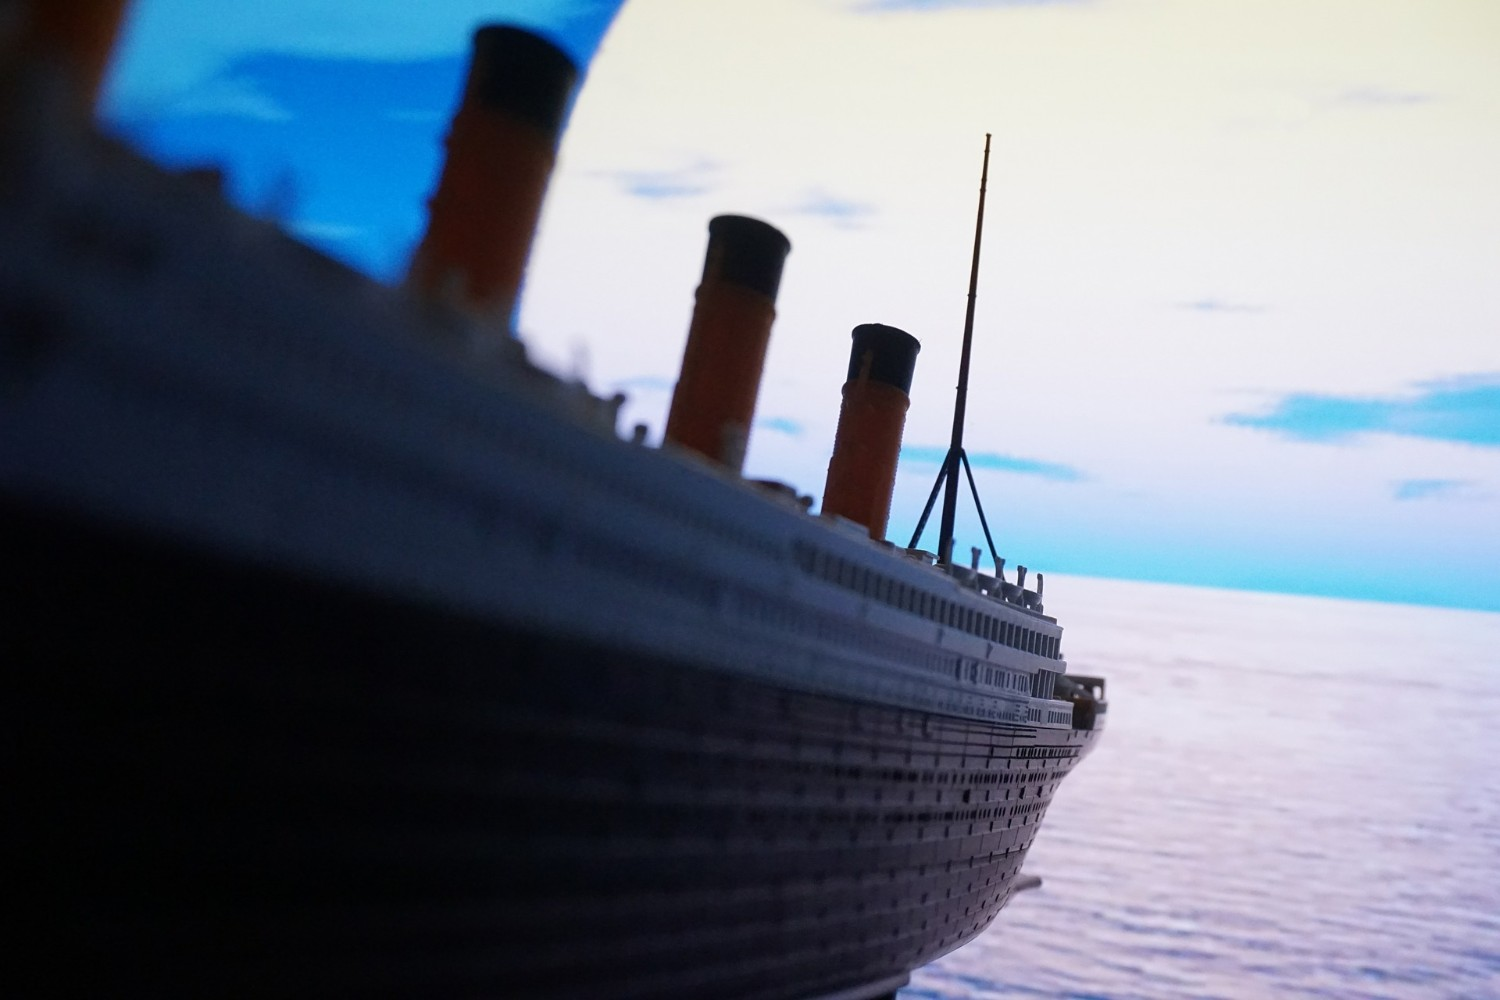 Close up of Titanic model, with ocean in background